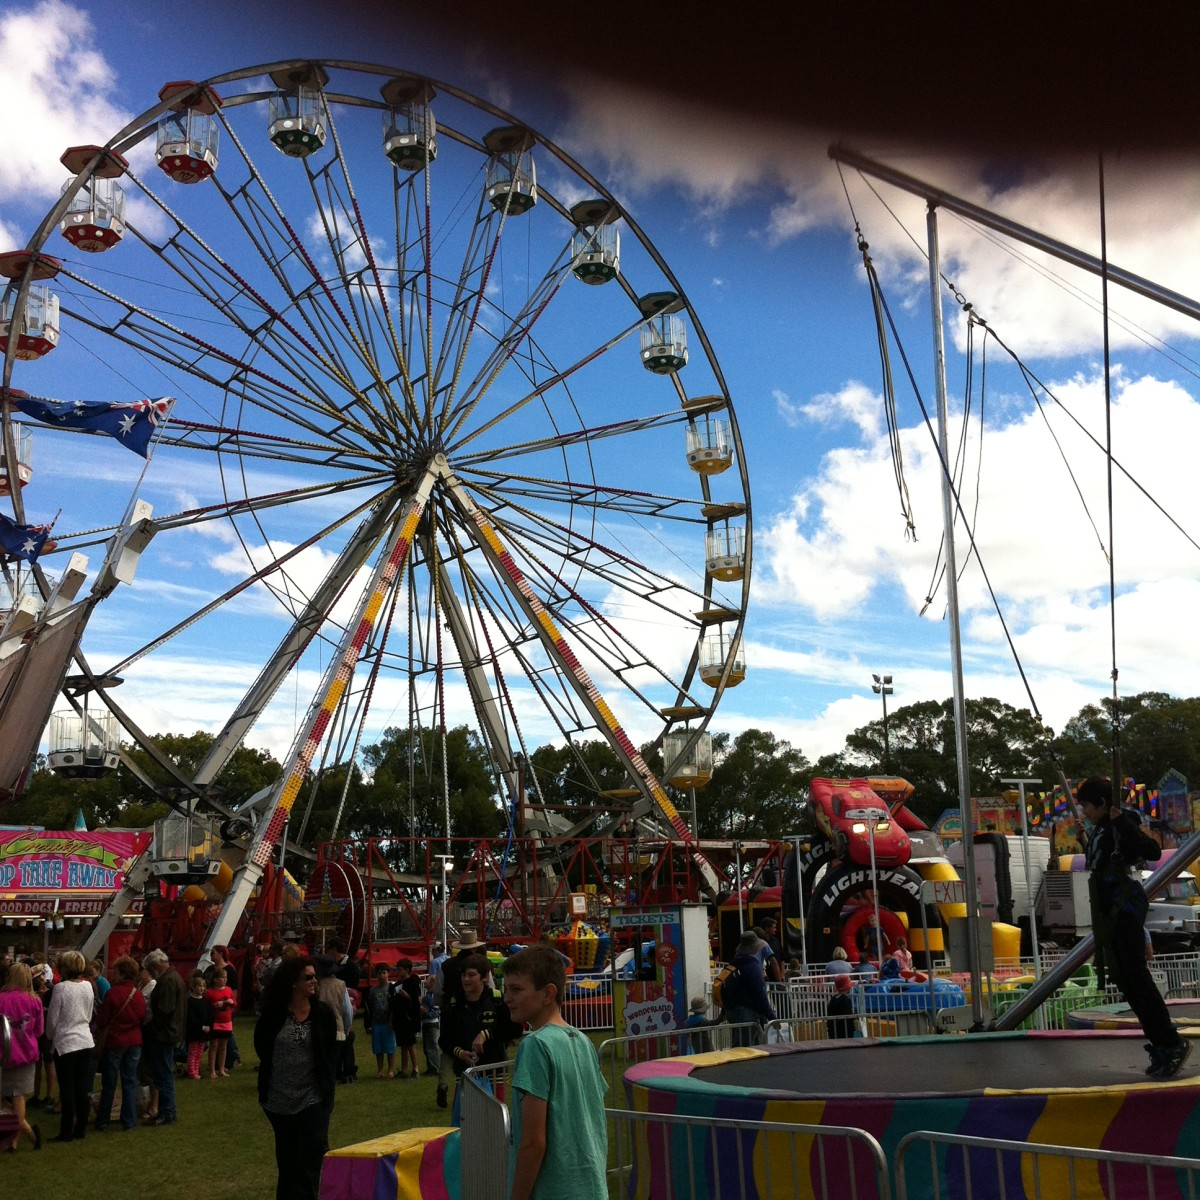 A Day at the Show (a poem about a day at a travelling fair or carnival)